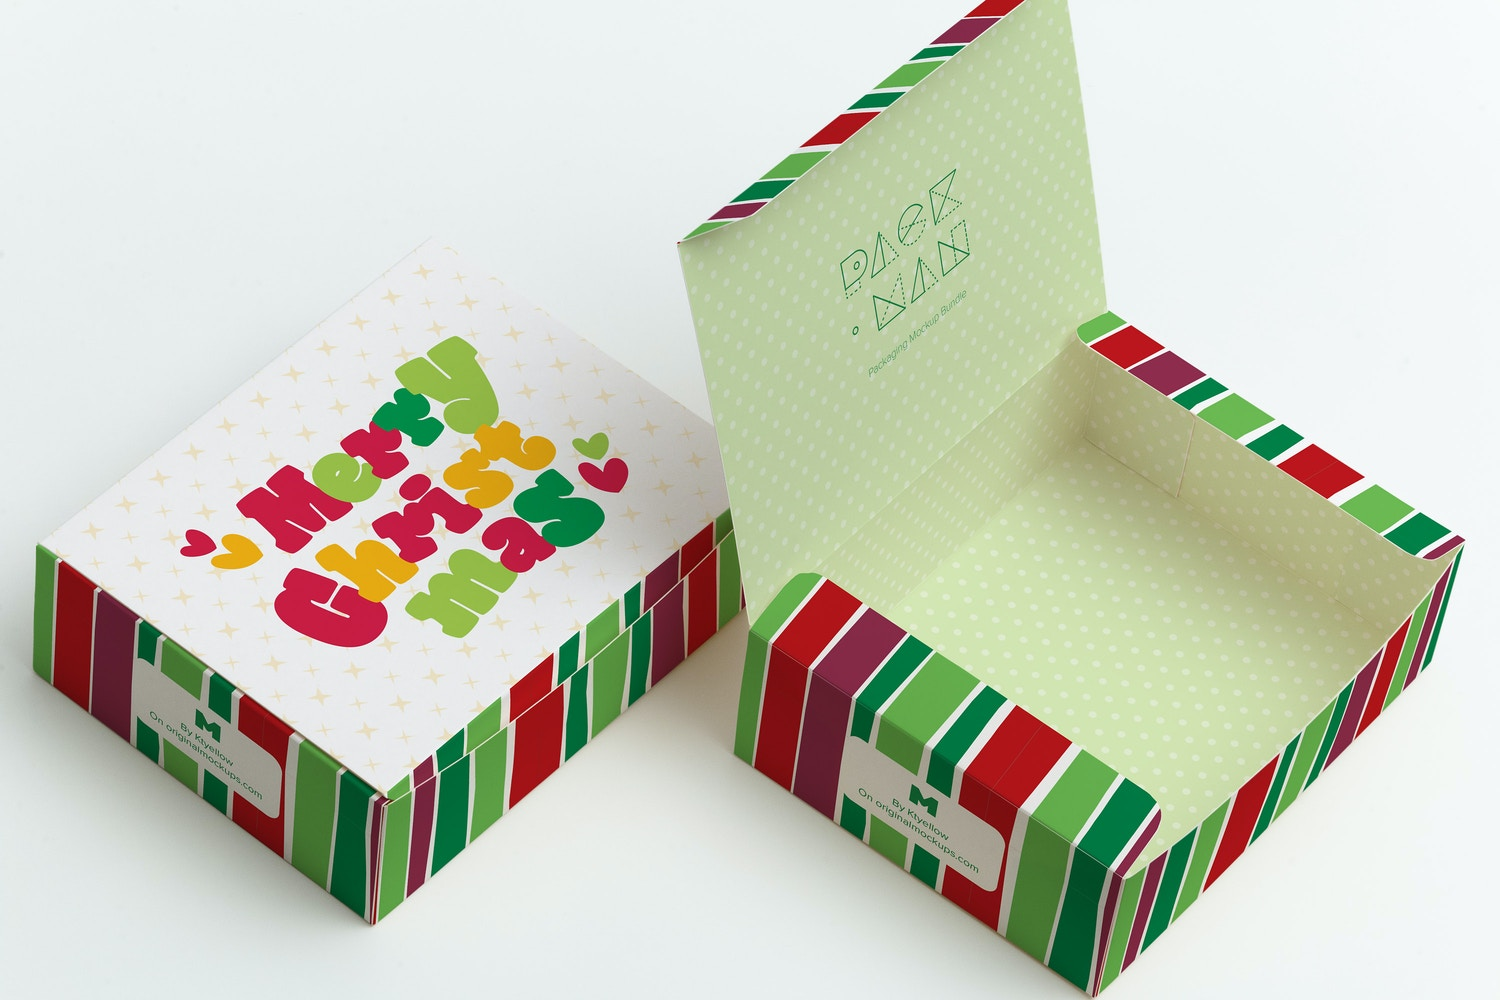 Sweet Box Mockup 06 by Ktyellow  on Original Mockups